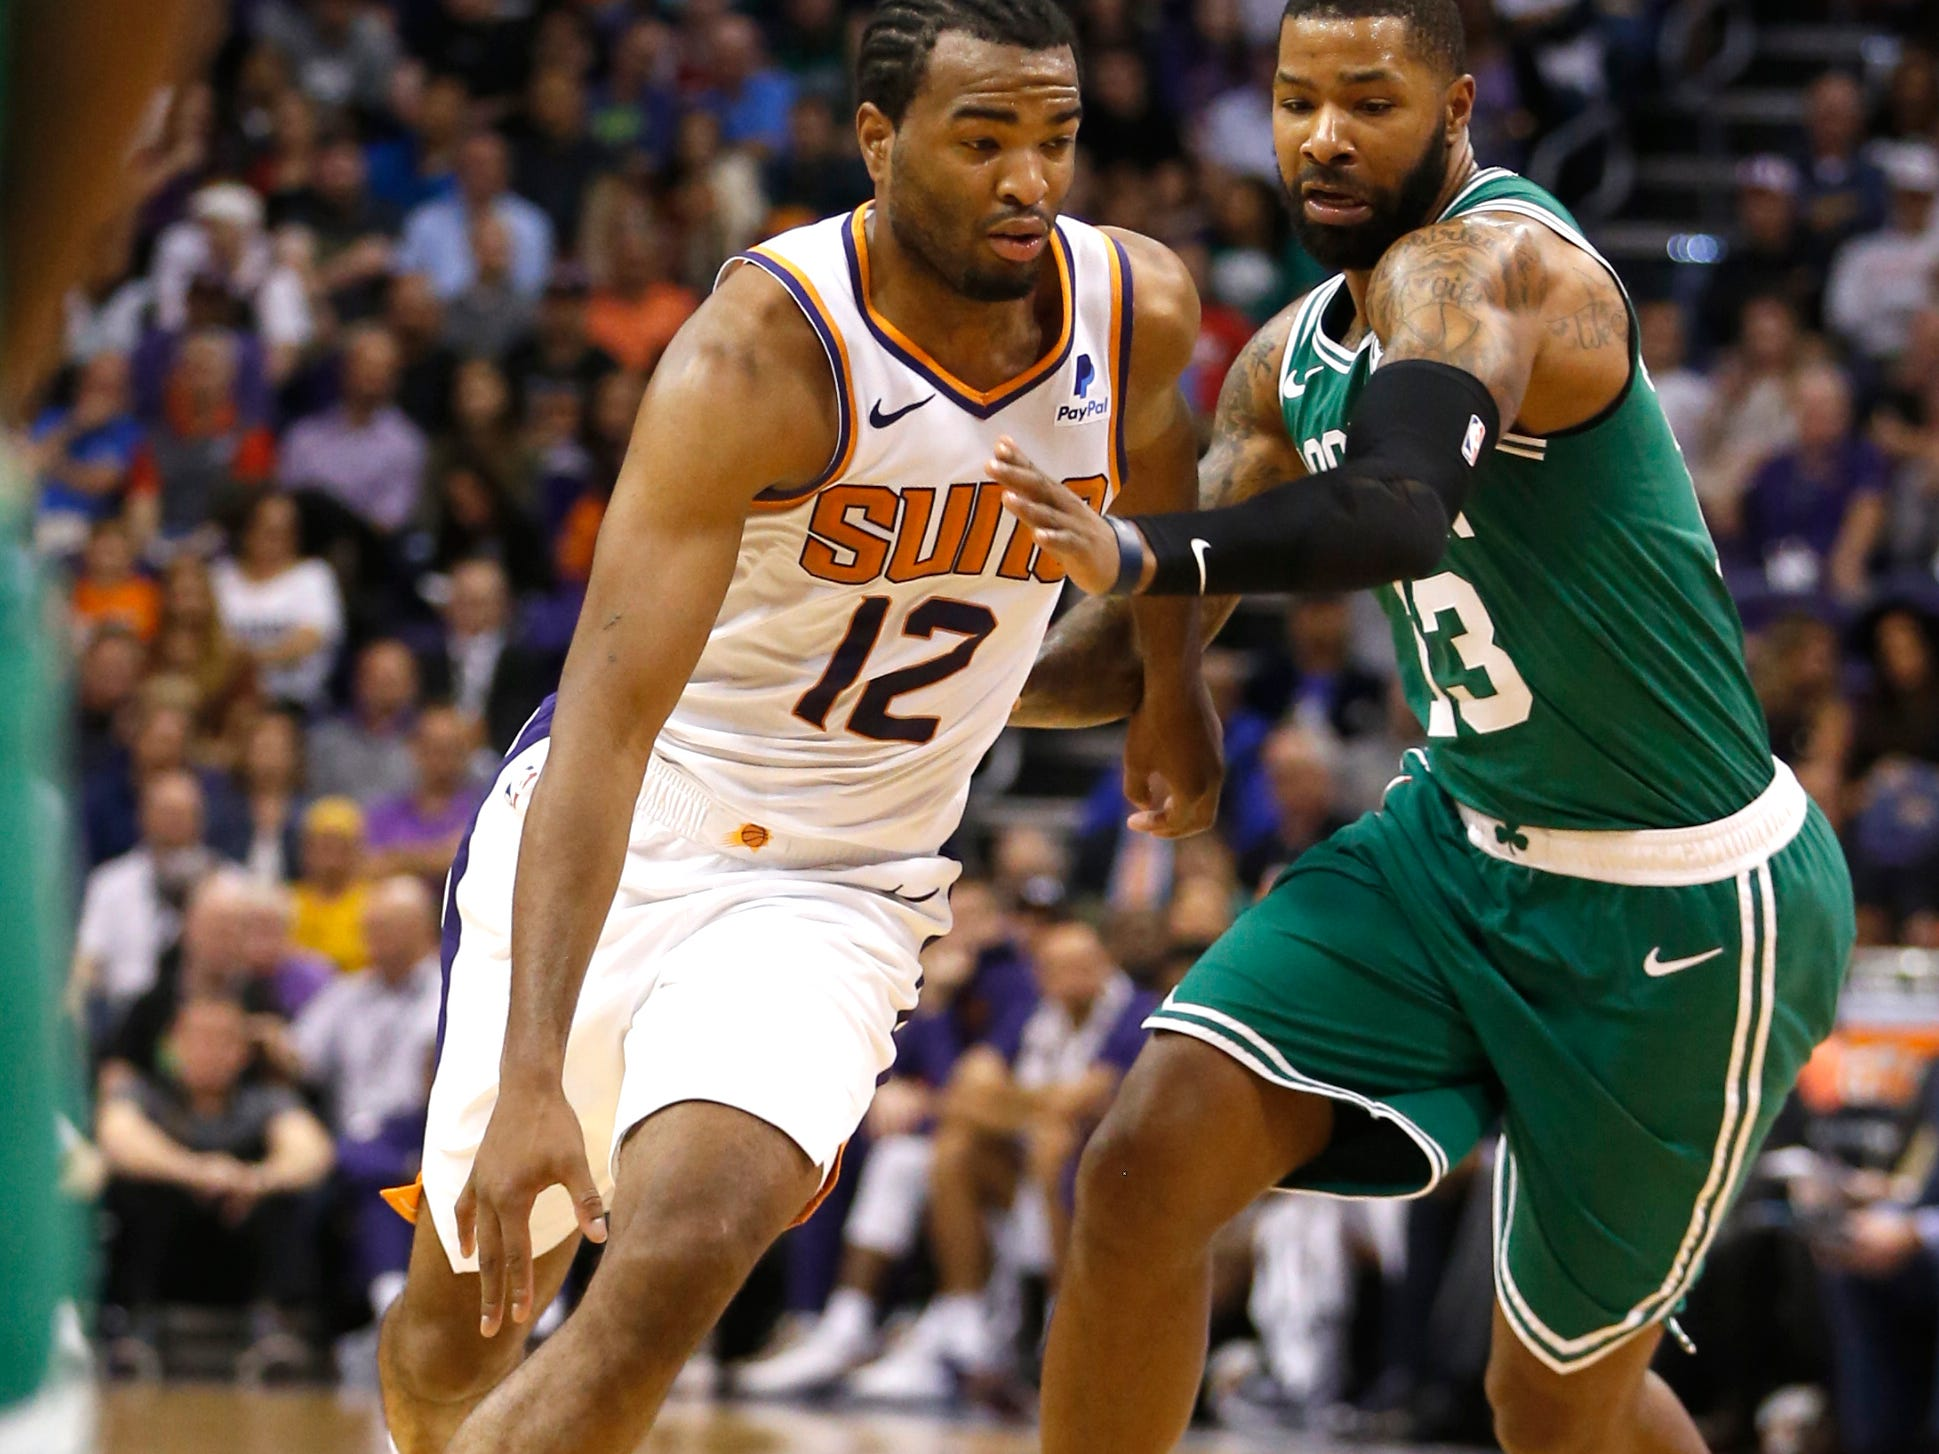 Suns' TJ Warren (12) drives against Celtics' Marcus Morris (13) during the first half at Talking Stick Resort Arena in Phoenix, Ariz. on November 8, 2018.